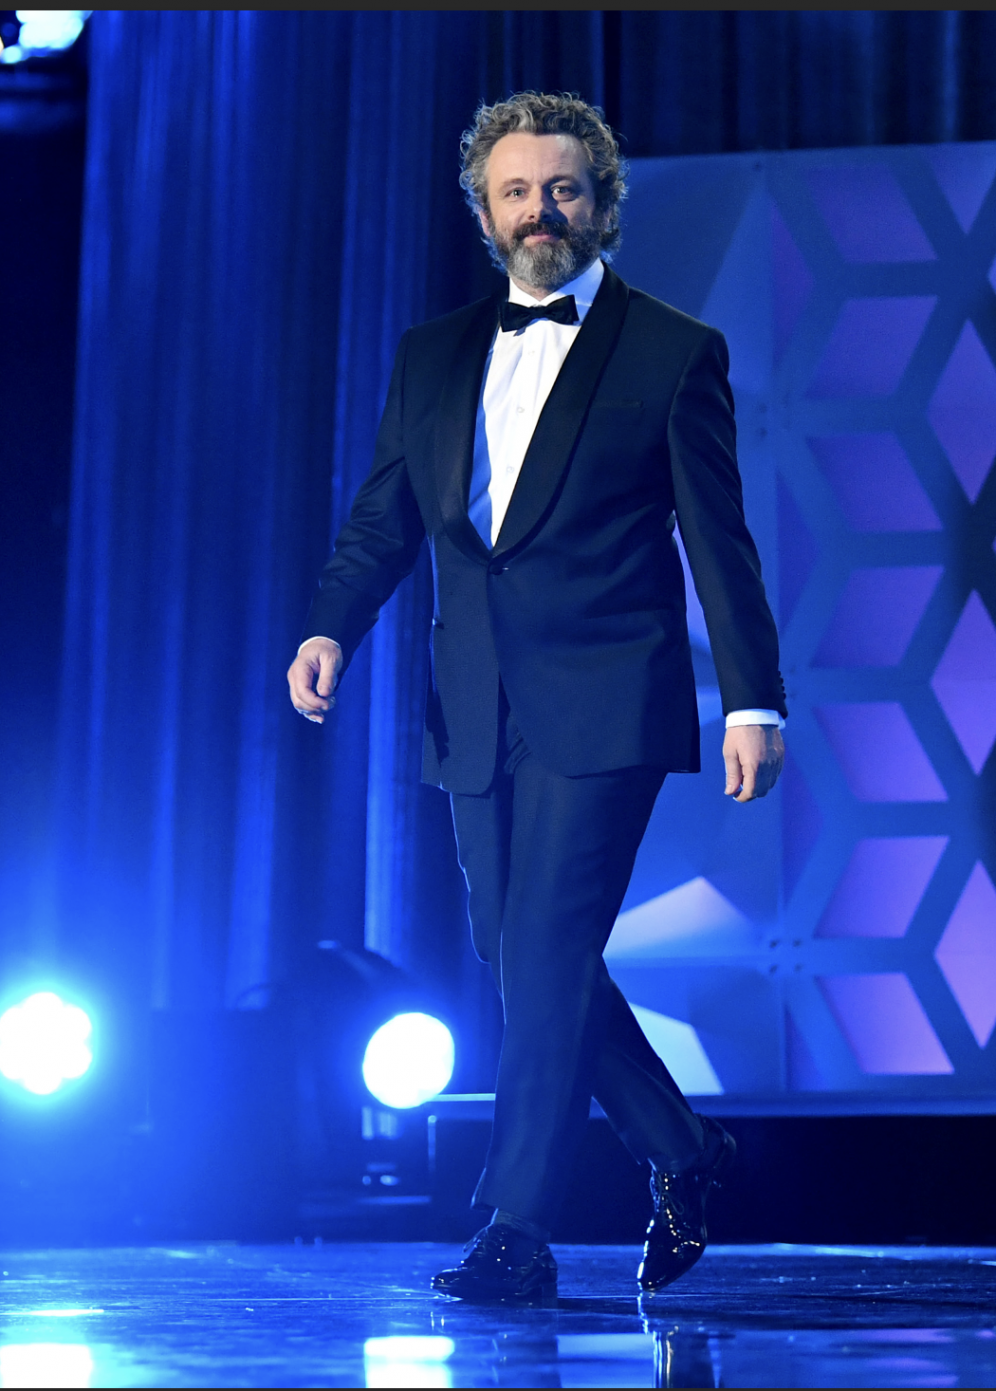 Michael Sheen | The 25th Annual Critics' Choice Awards